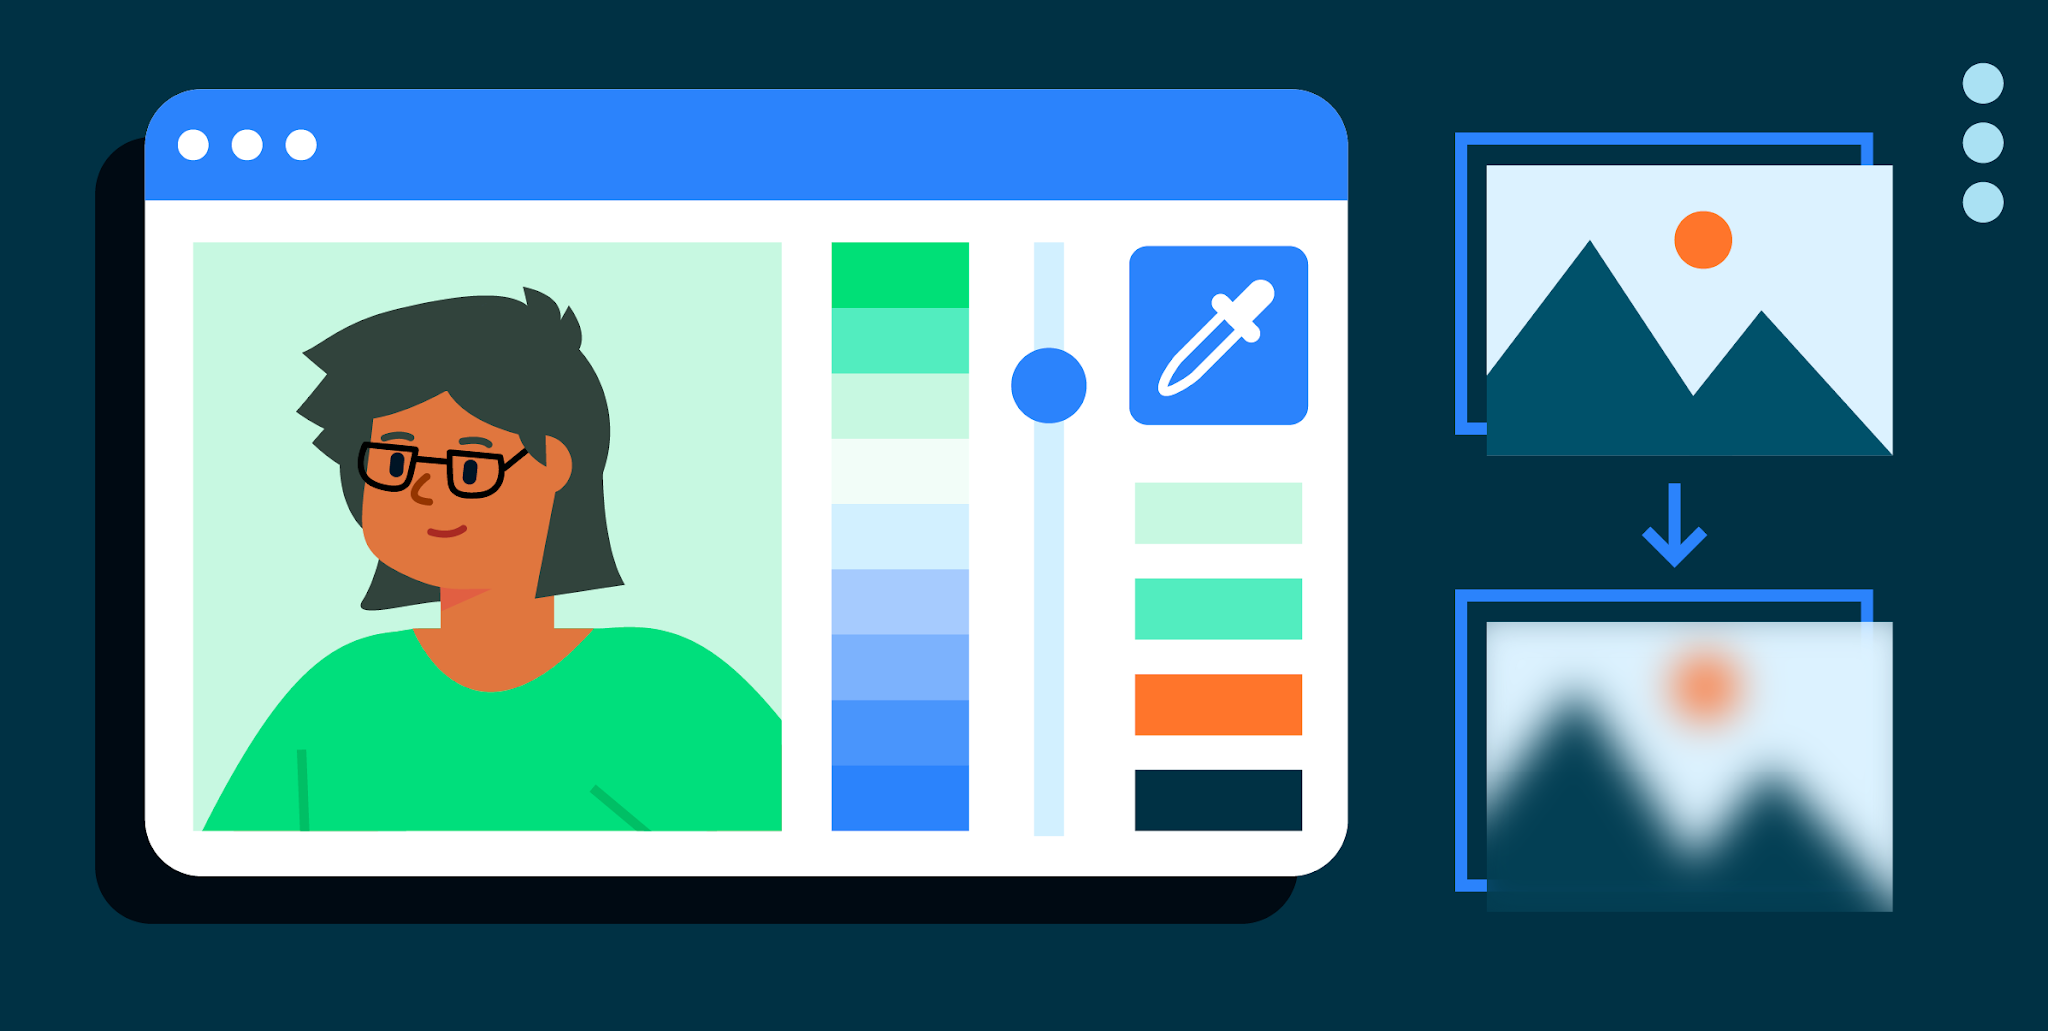 Illustration of image rendering with character